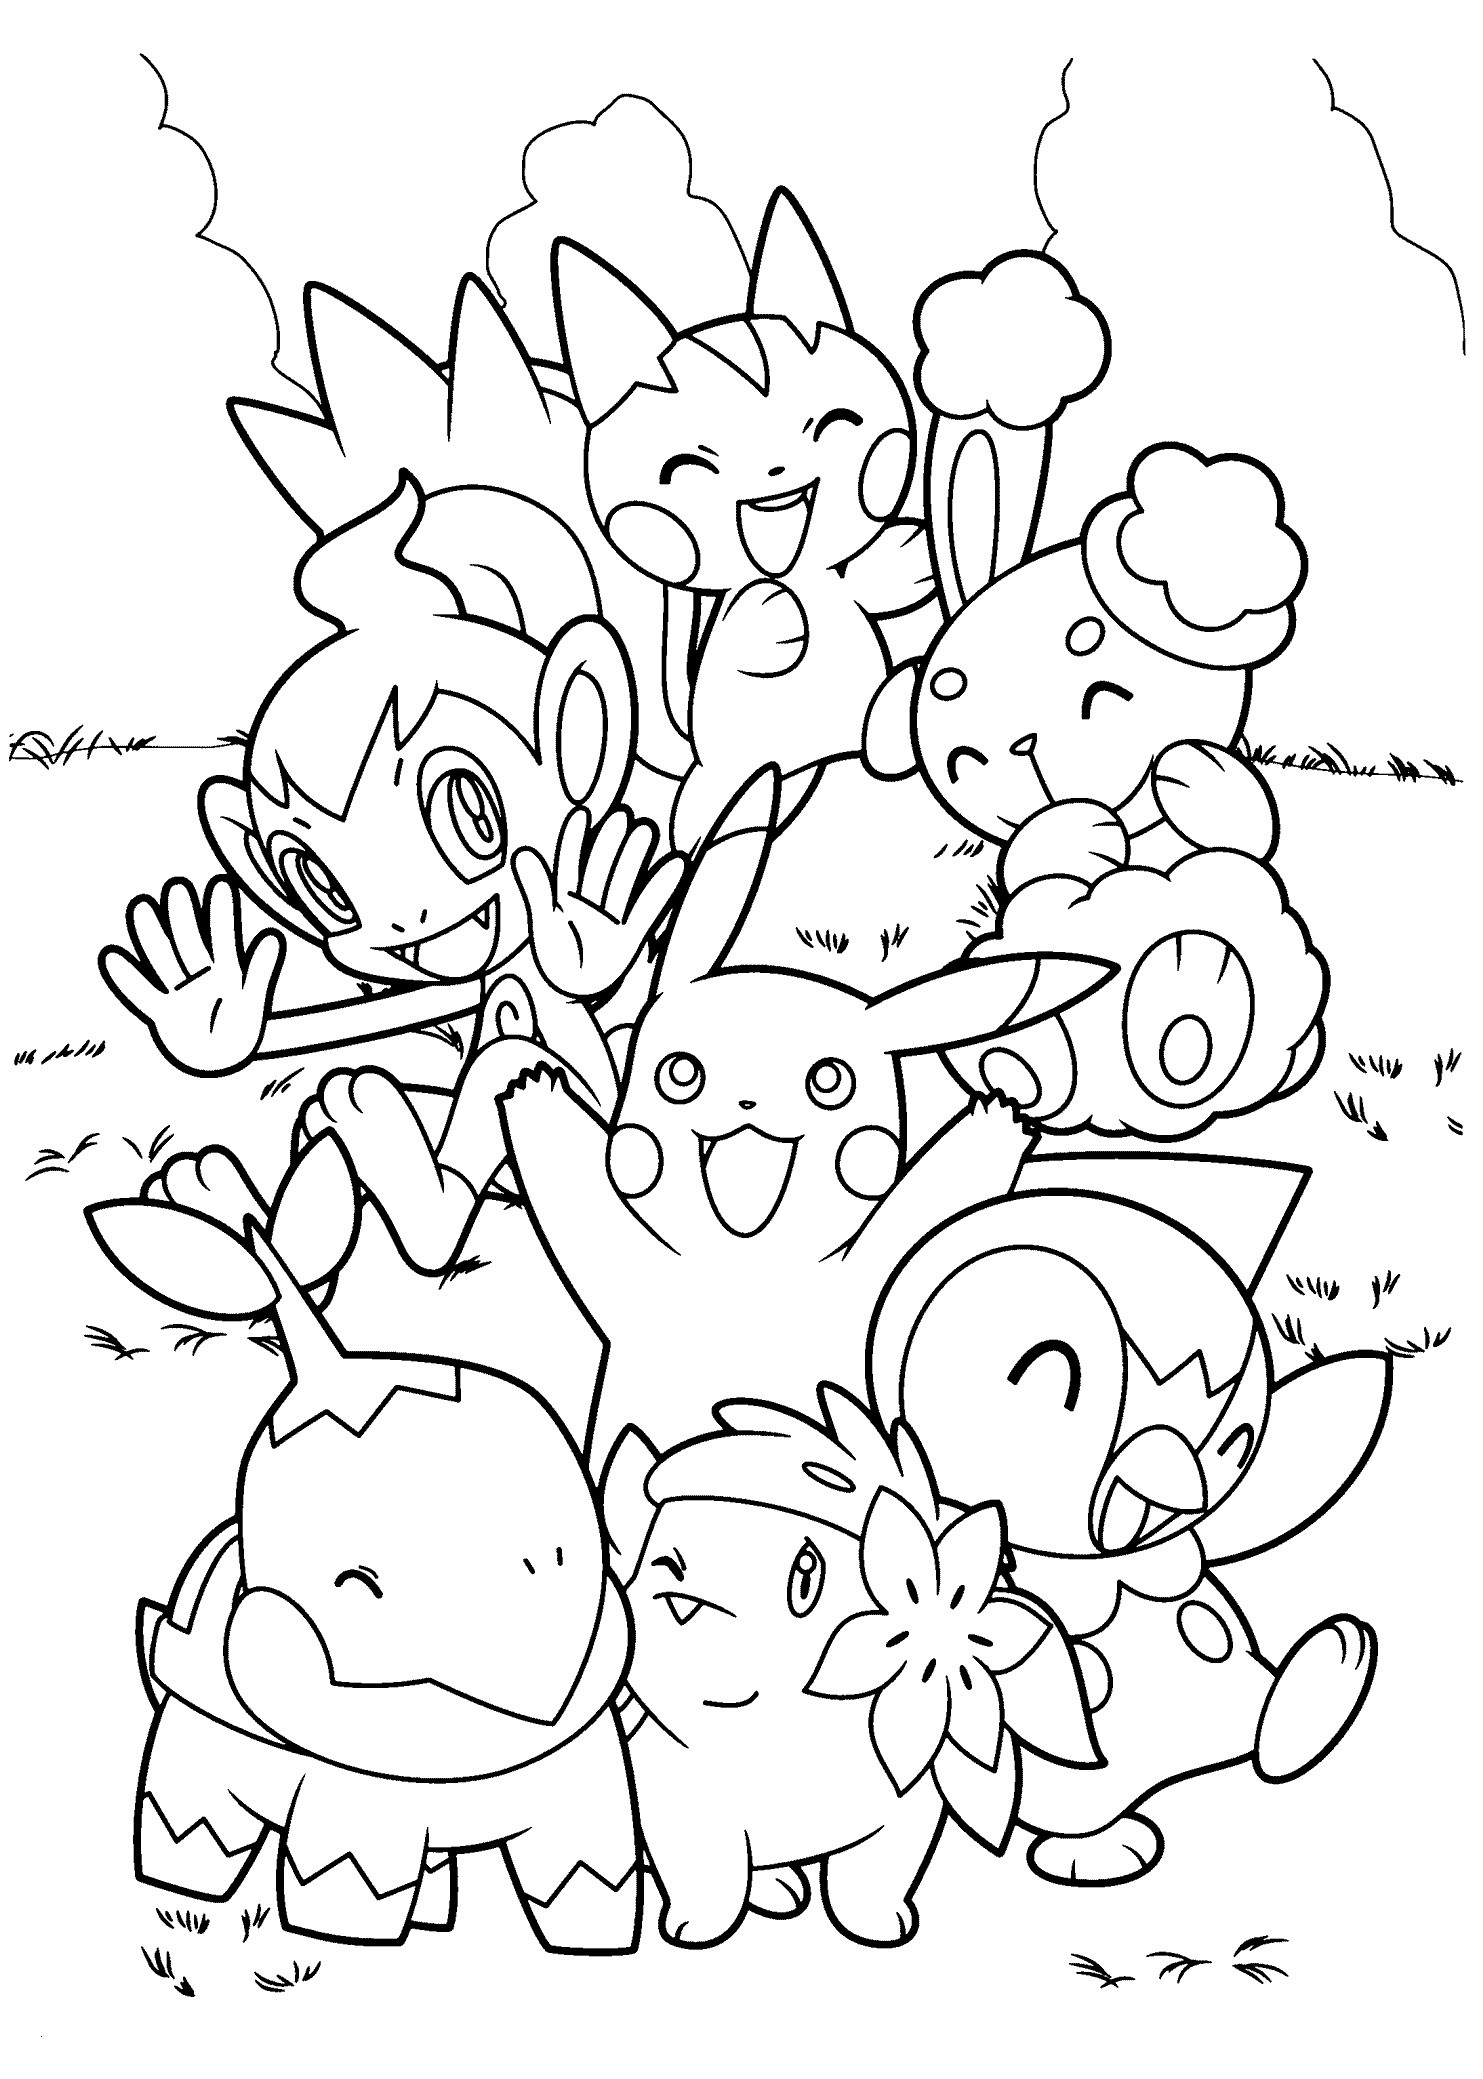 Ausmalbilder Karneval Kostenlos Genial top 75 Free Printable Pokemon Coloring Pages Line Best Bild